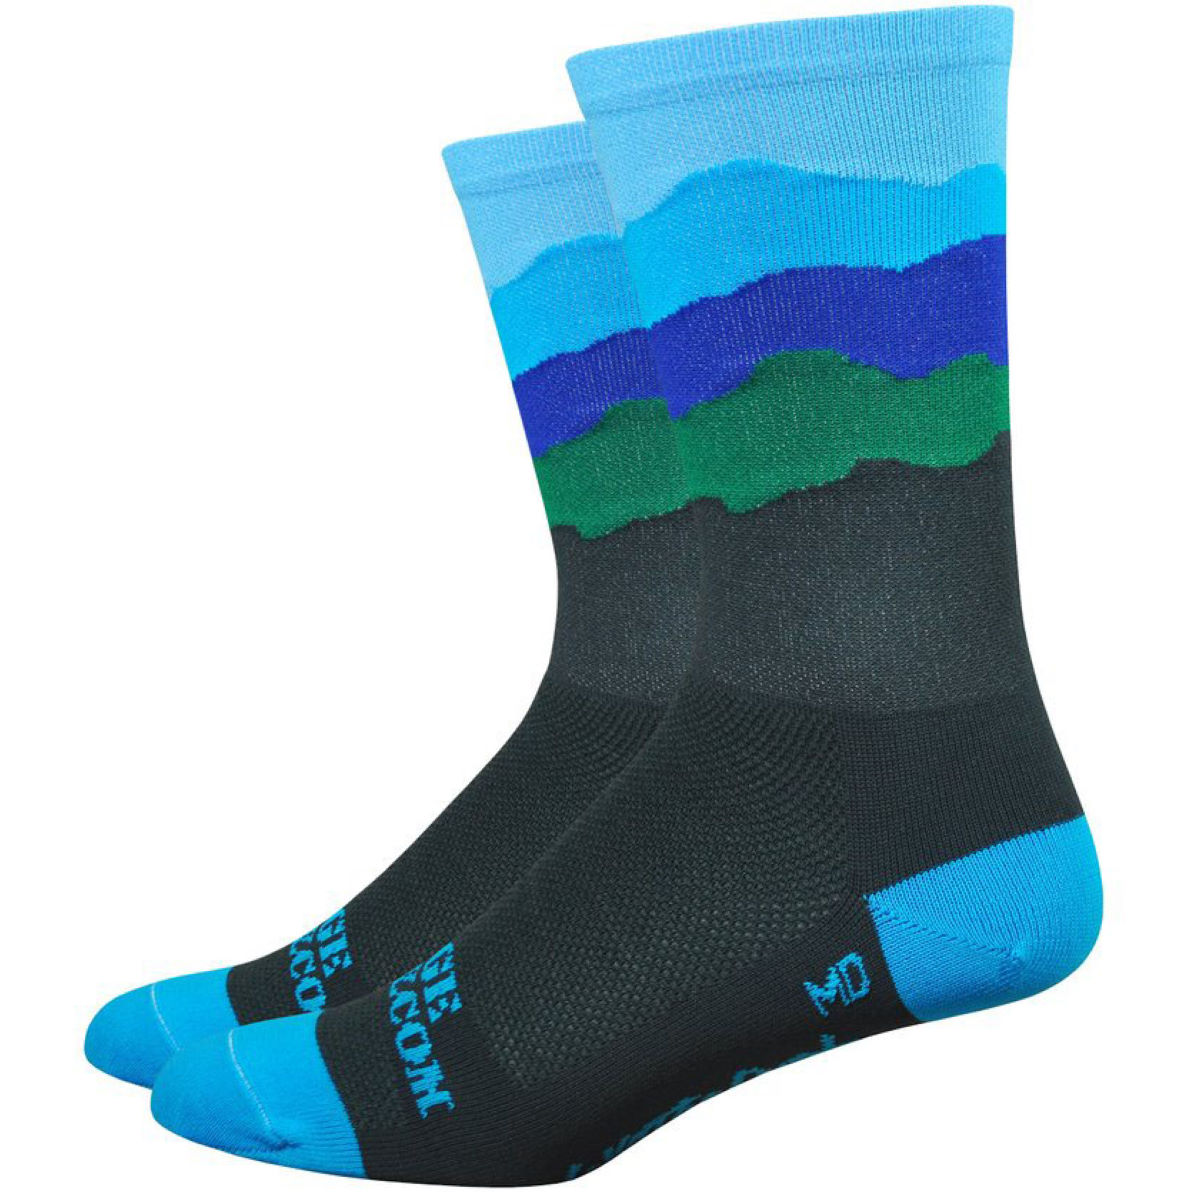 "DeFeet DeFeet Aireator 6"" Ridge Supply Skyline Appalachia Socks   Socks"